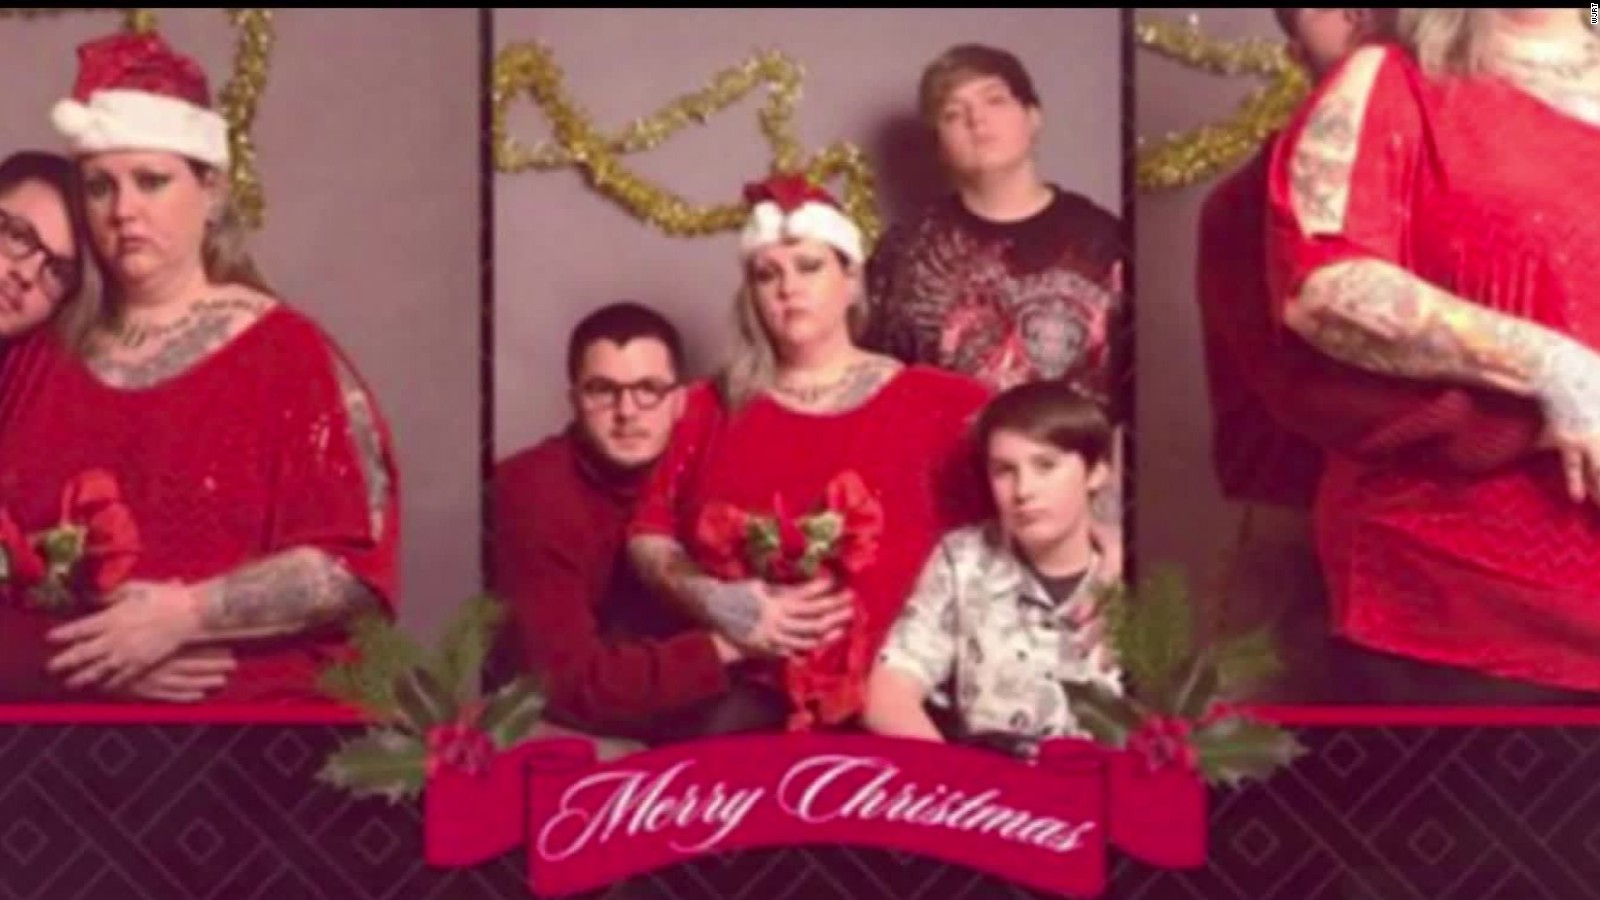 Man creates fake Christmas card to scare his family - CNN Video